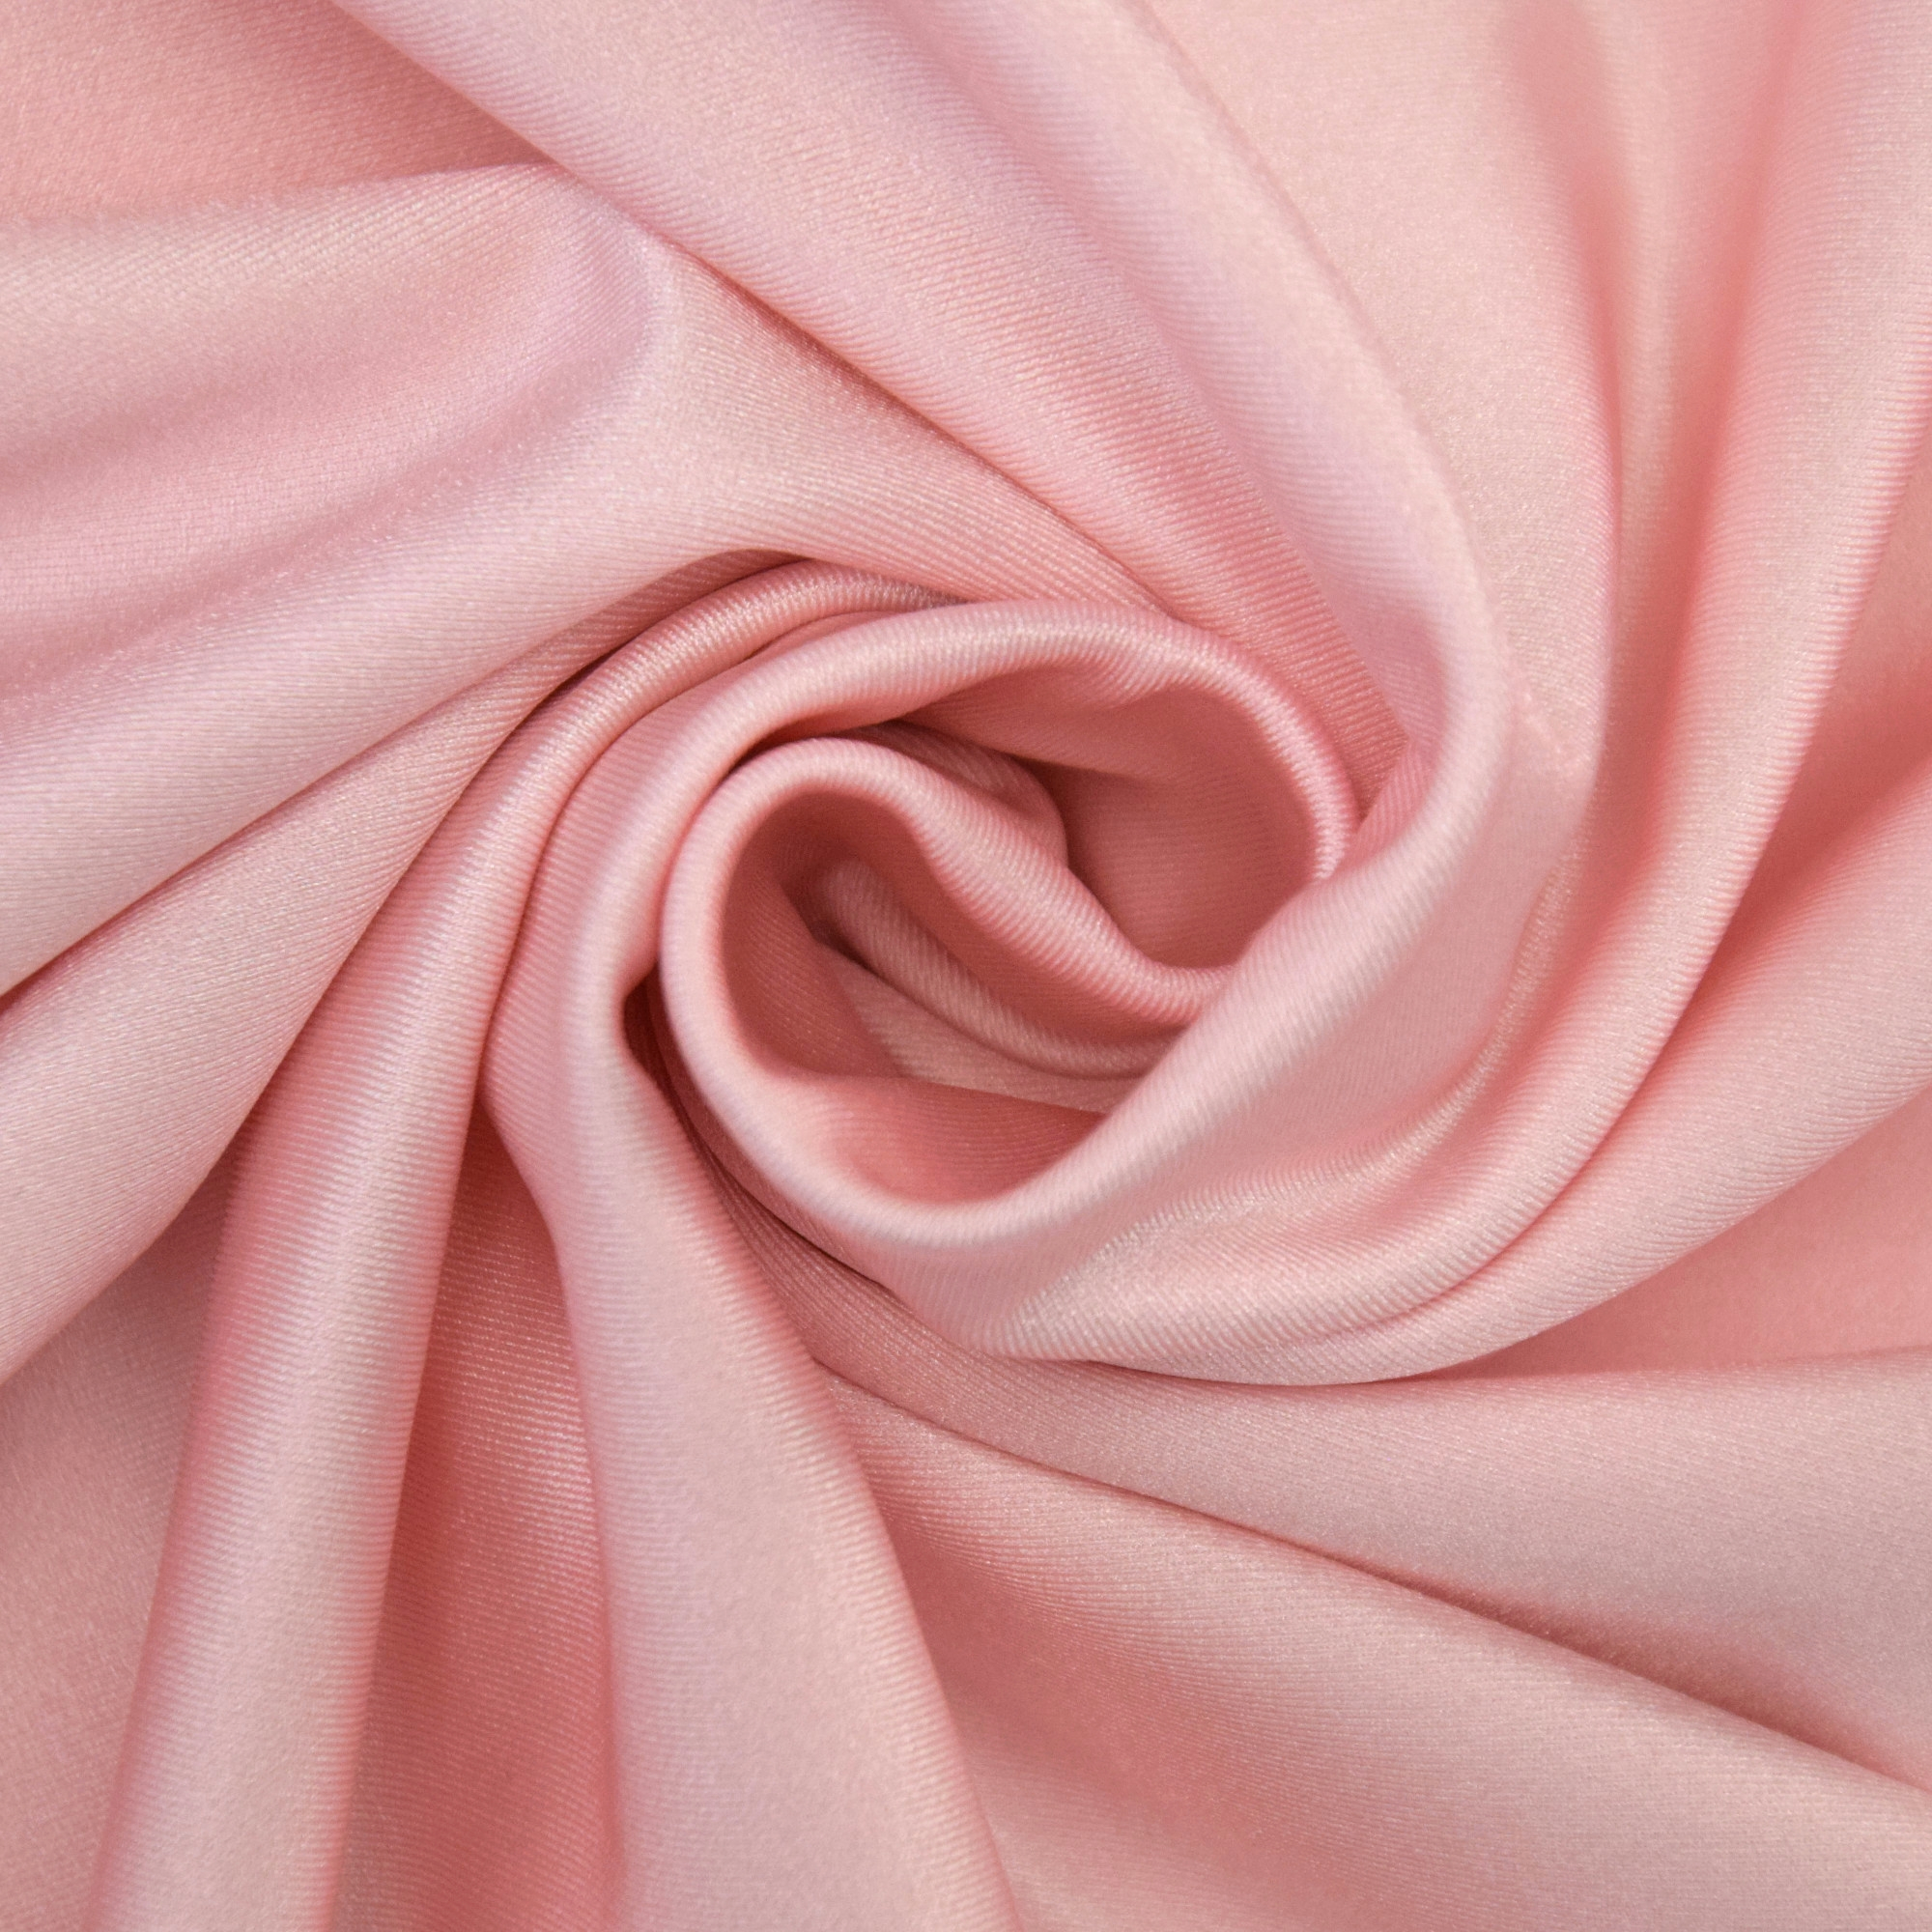 Swimsuit fabric pink 1 | 110.473-5017 | rosa